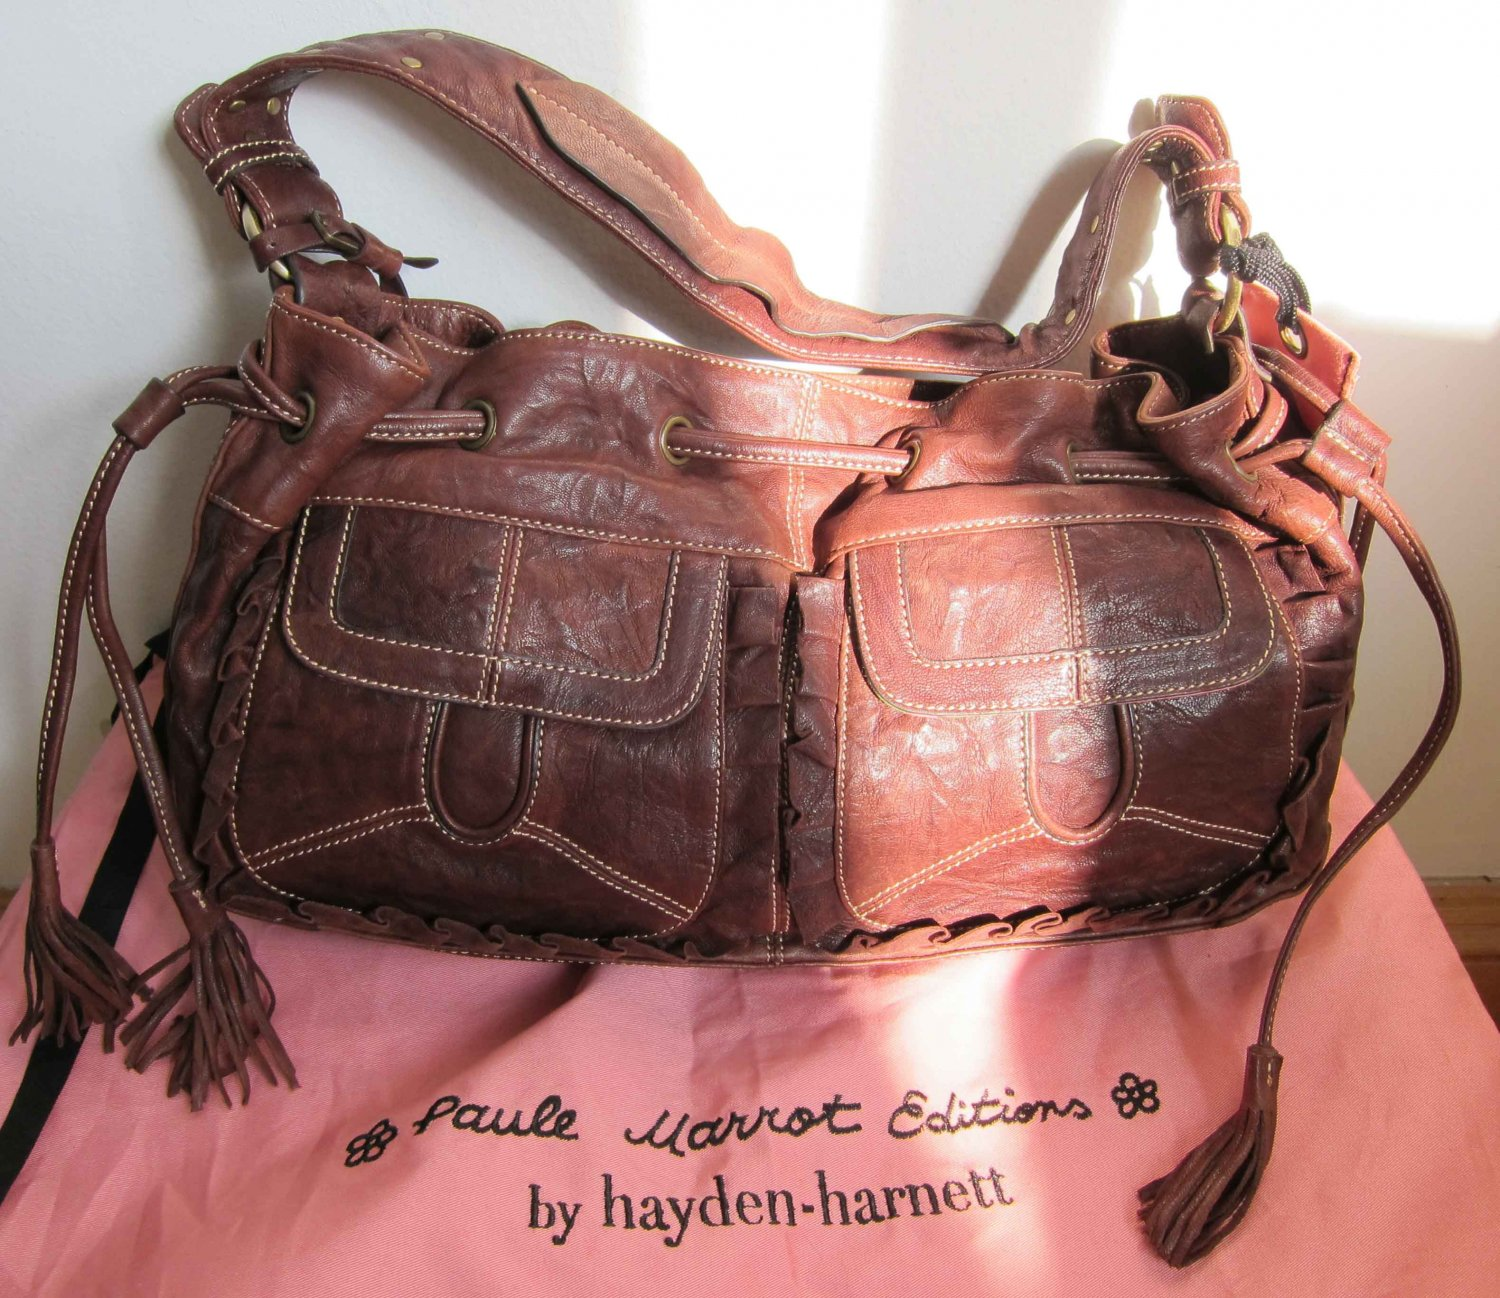 New Hayden-Harnett Paule Marrot Editions Nomade Ruffled Drawstring hobo